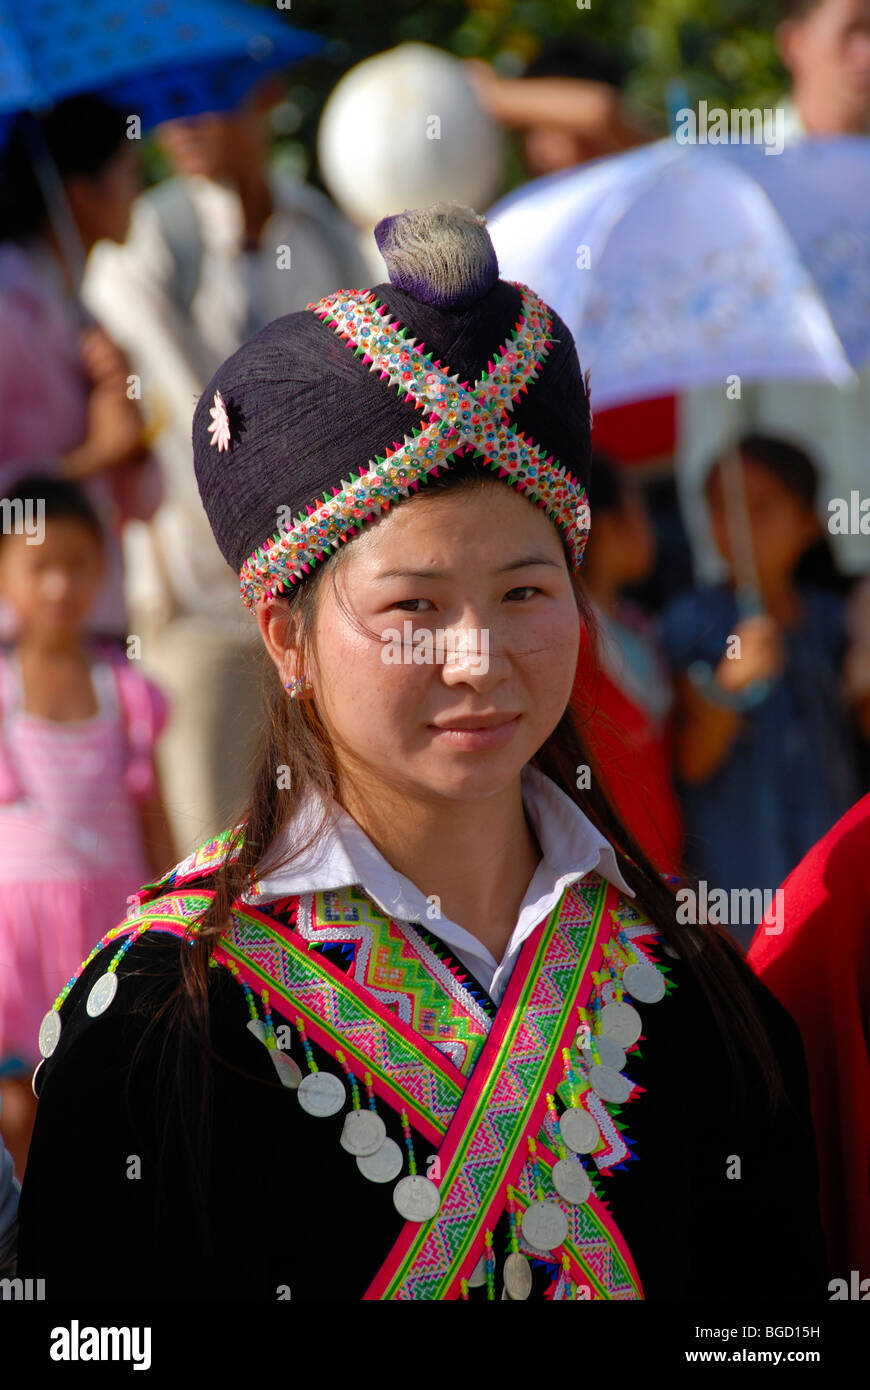 Festival, young Hmong woman, portrait, dressed in traditional clothing, headgear, Xam Neua, Houaphan province, Laos, - Stock Image